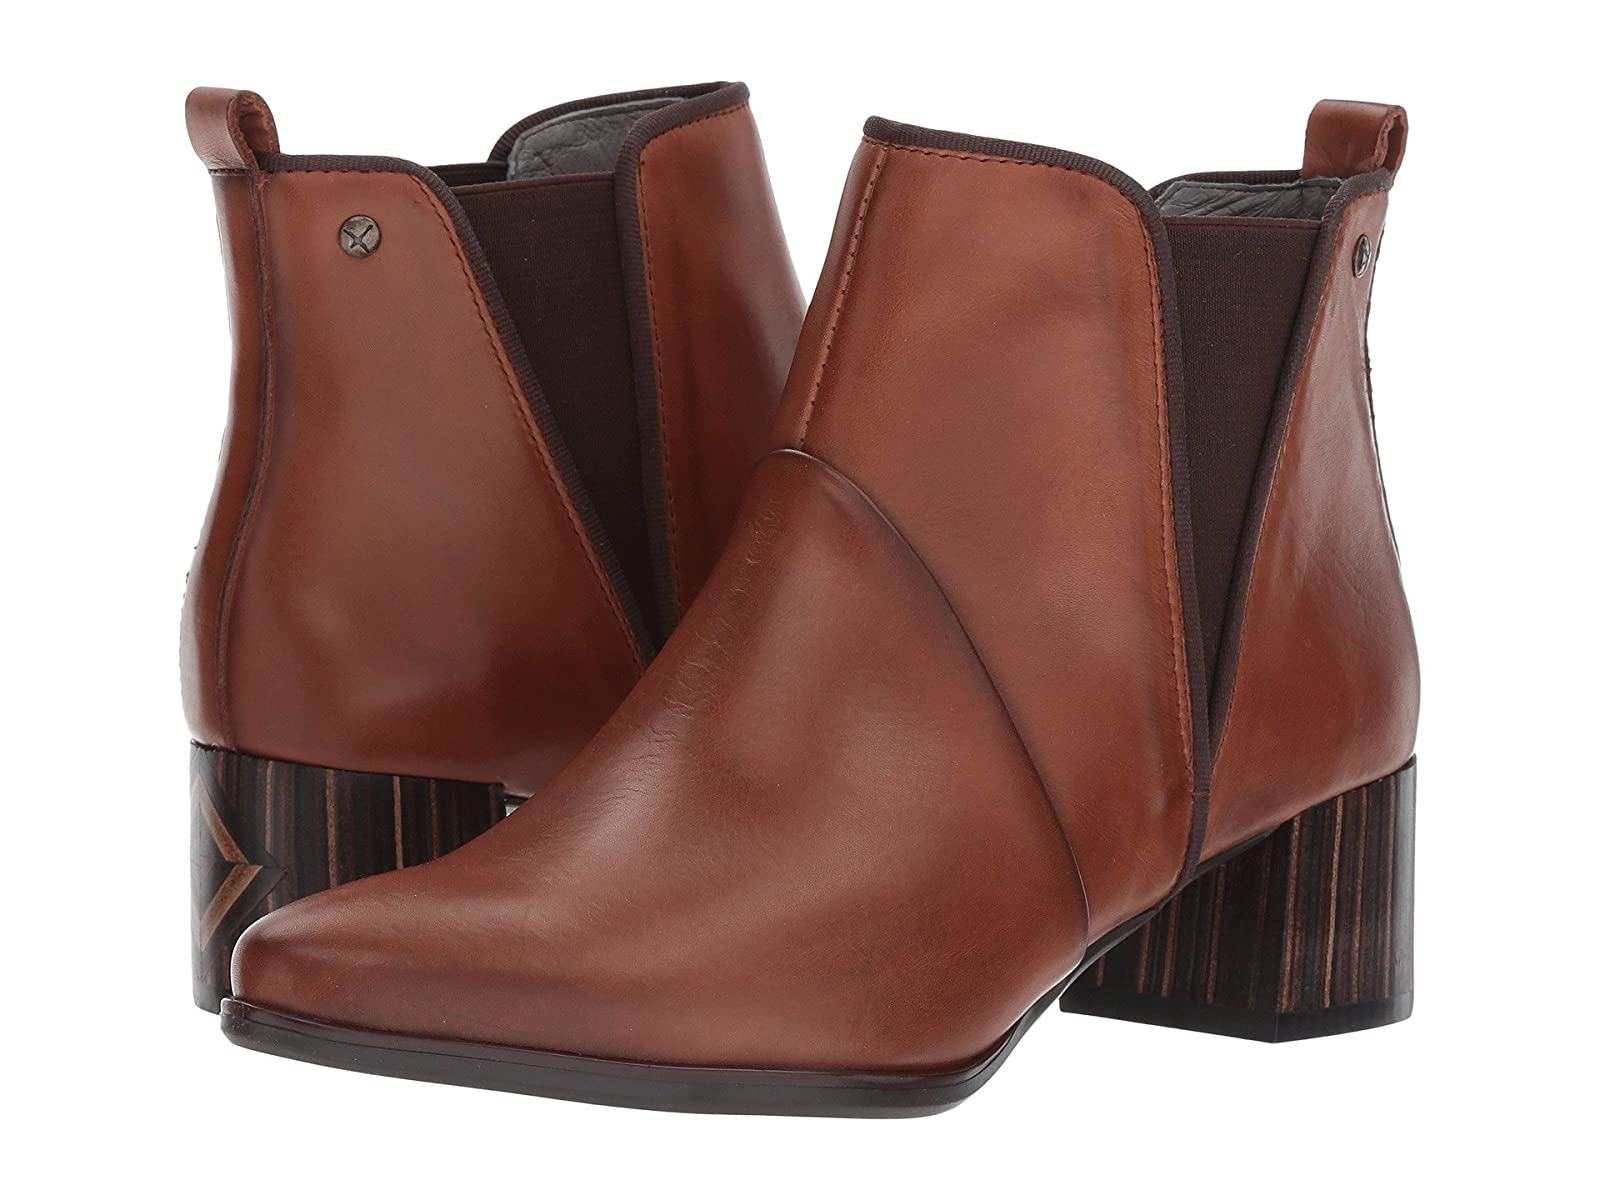 Pikolinos Canada W8N-8540Cheap and distinctive eye-catching shoes